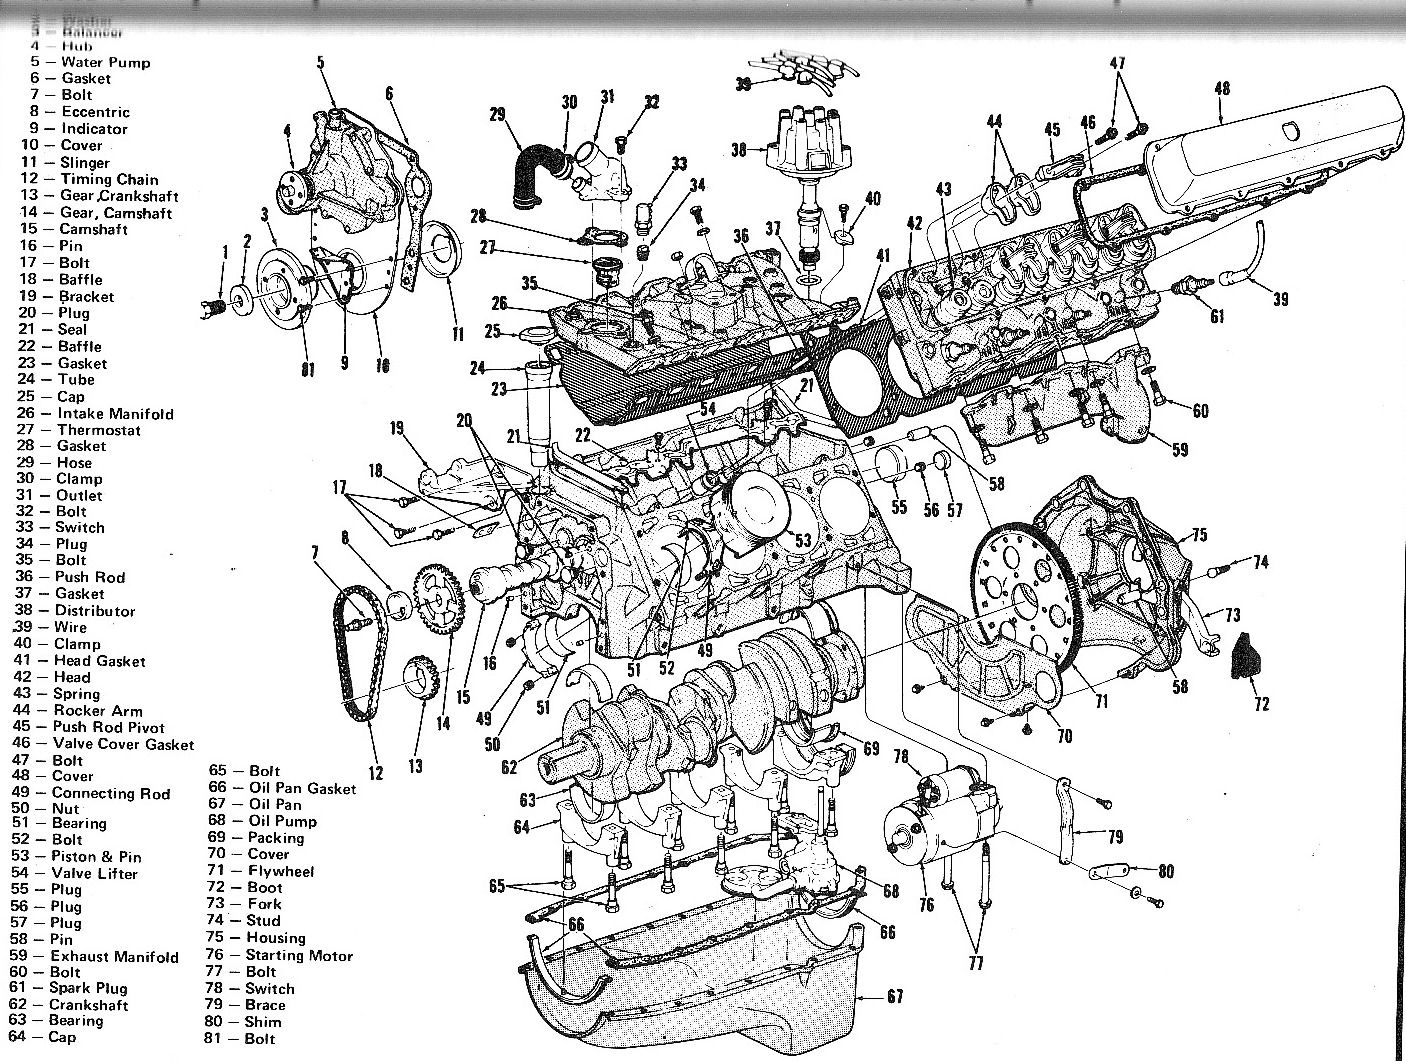 Mustang Motor Diagram Schematic Wiring Diagrams 1 9 Sefi Engine Complete V 8 Engines Transmissions 3 D Lay Out 1972 302